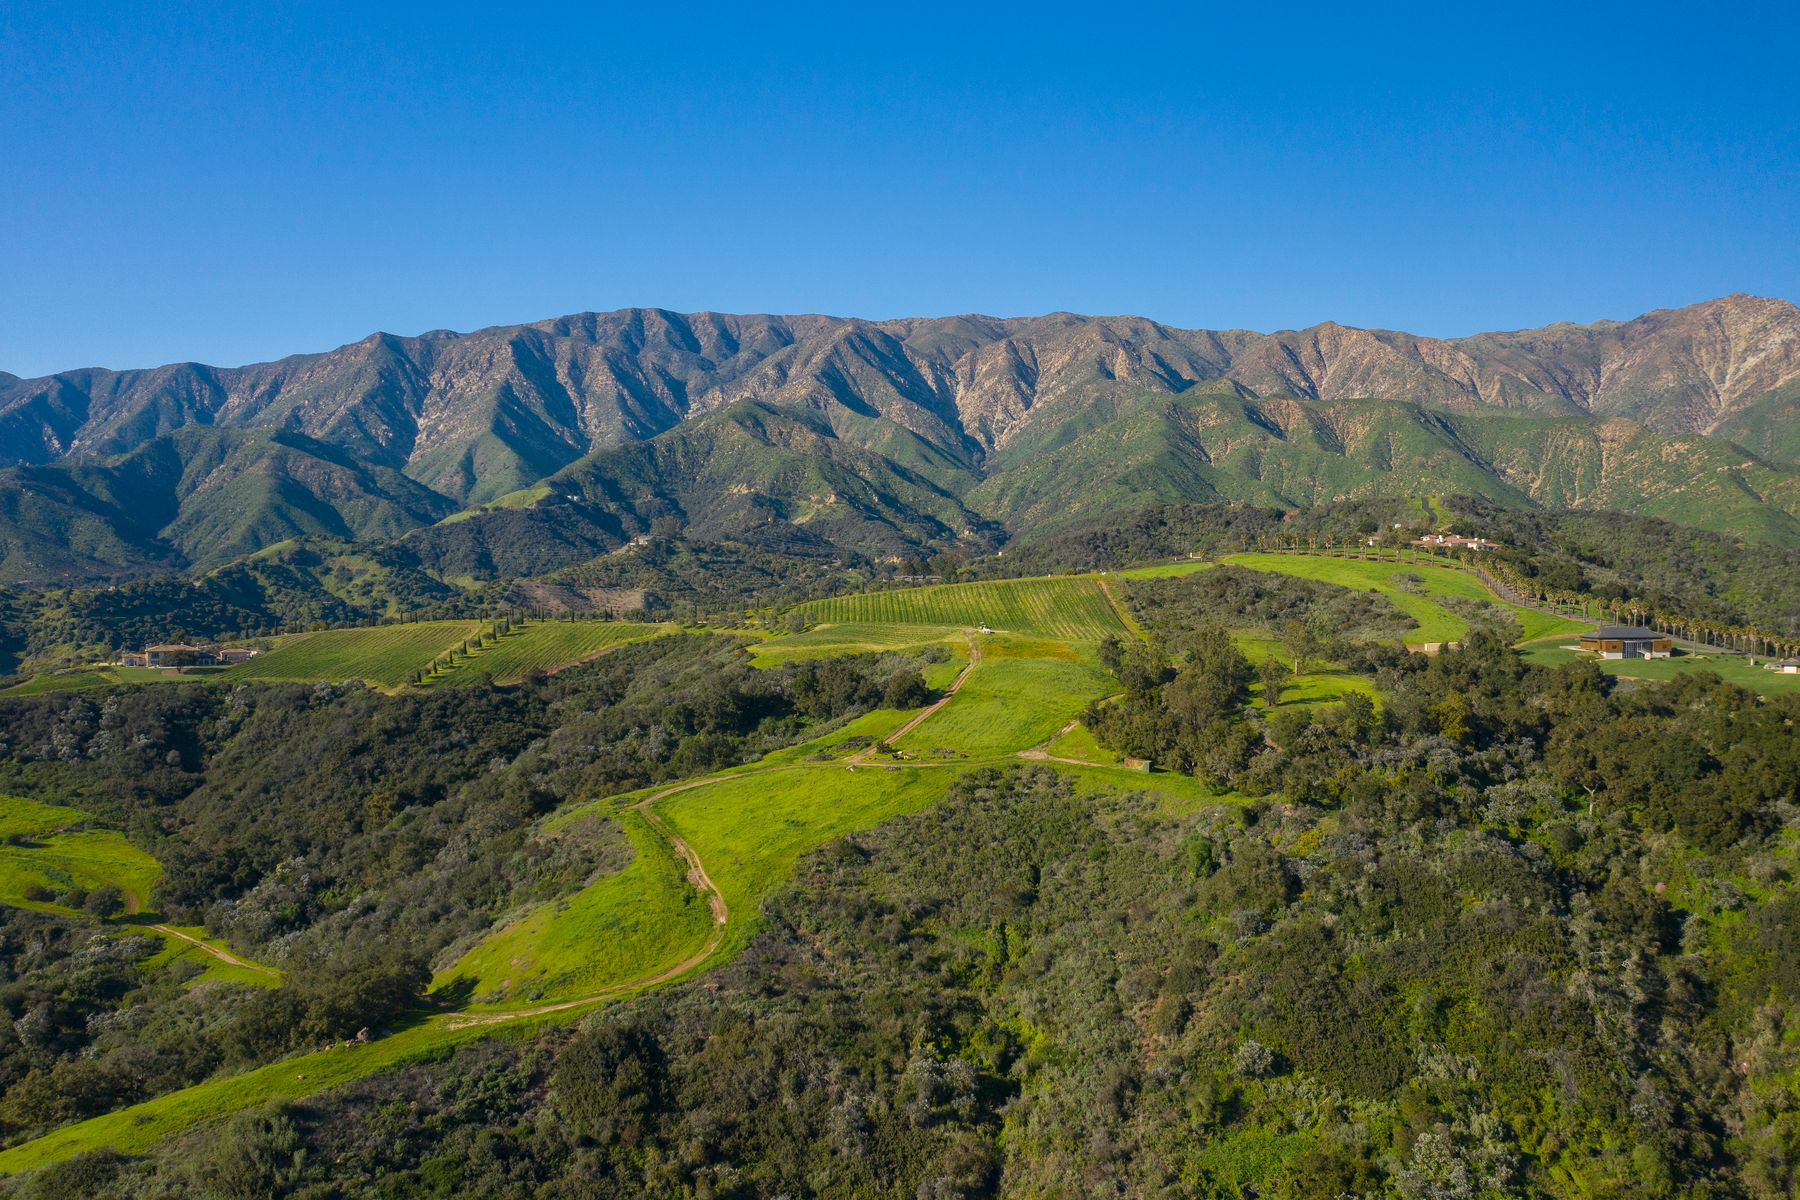 Property for Sale at Stunning Montecito View Site 580 Toro Canyon Park Rd Santa Barbara, California 93108 United States